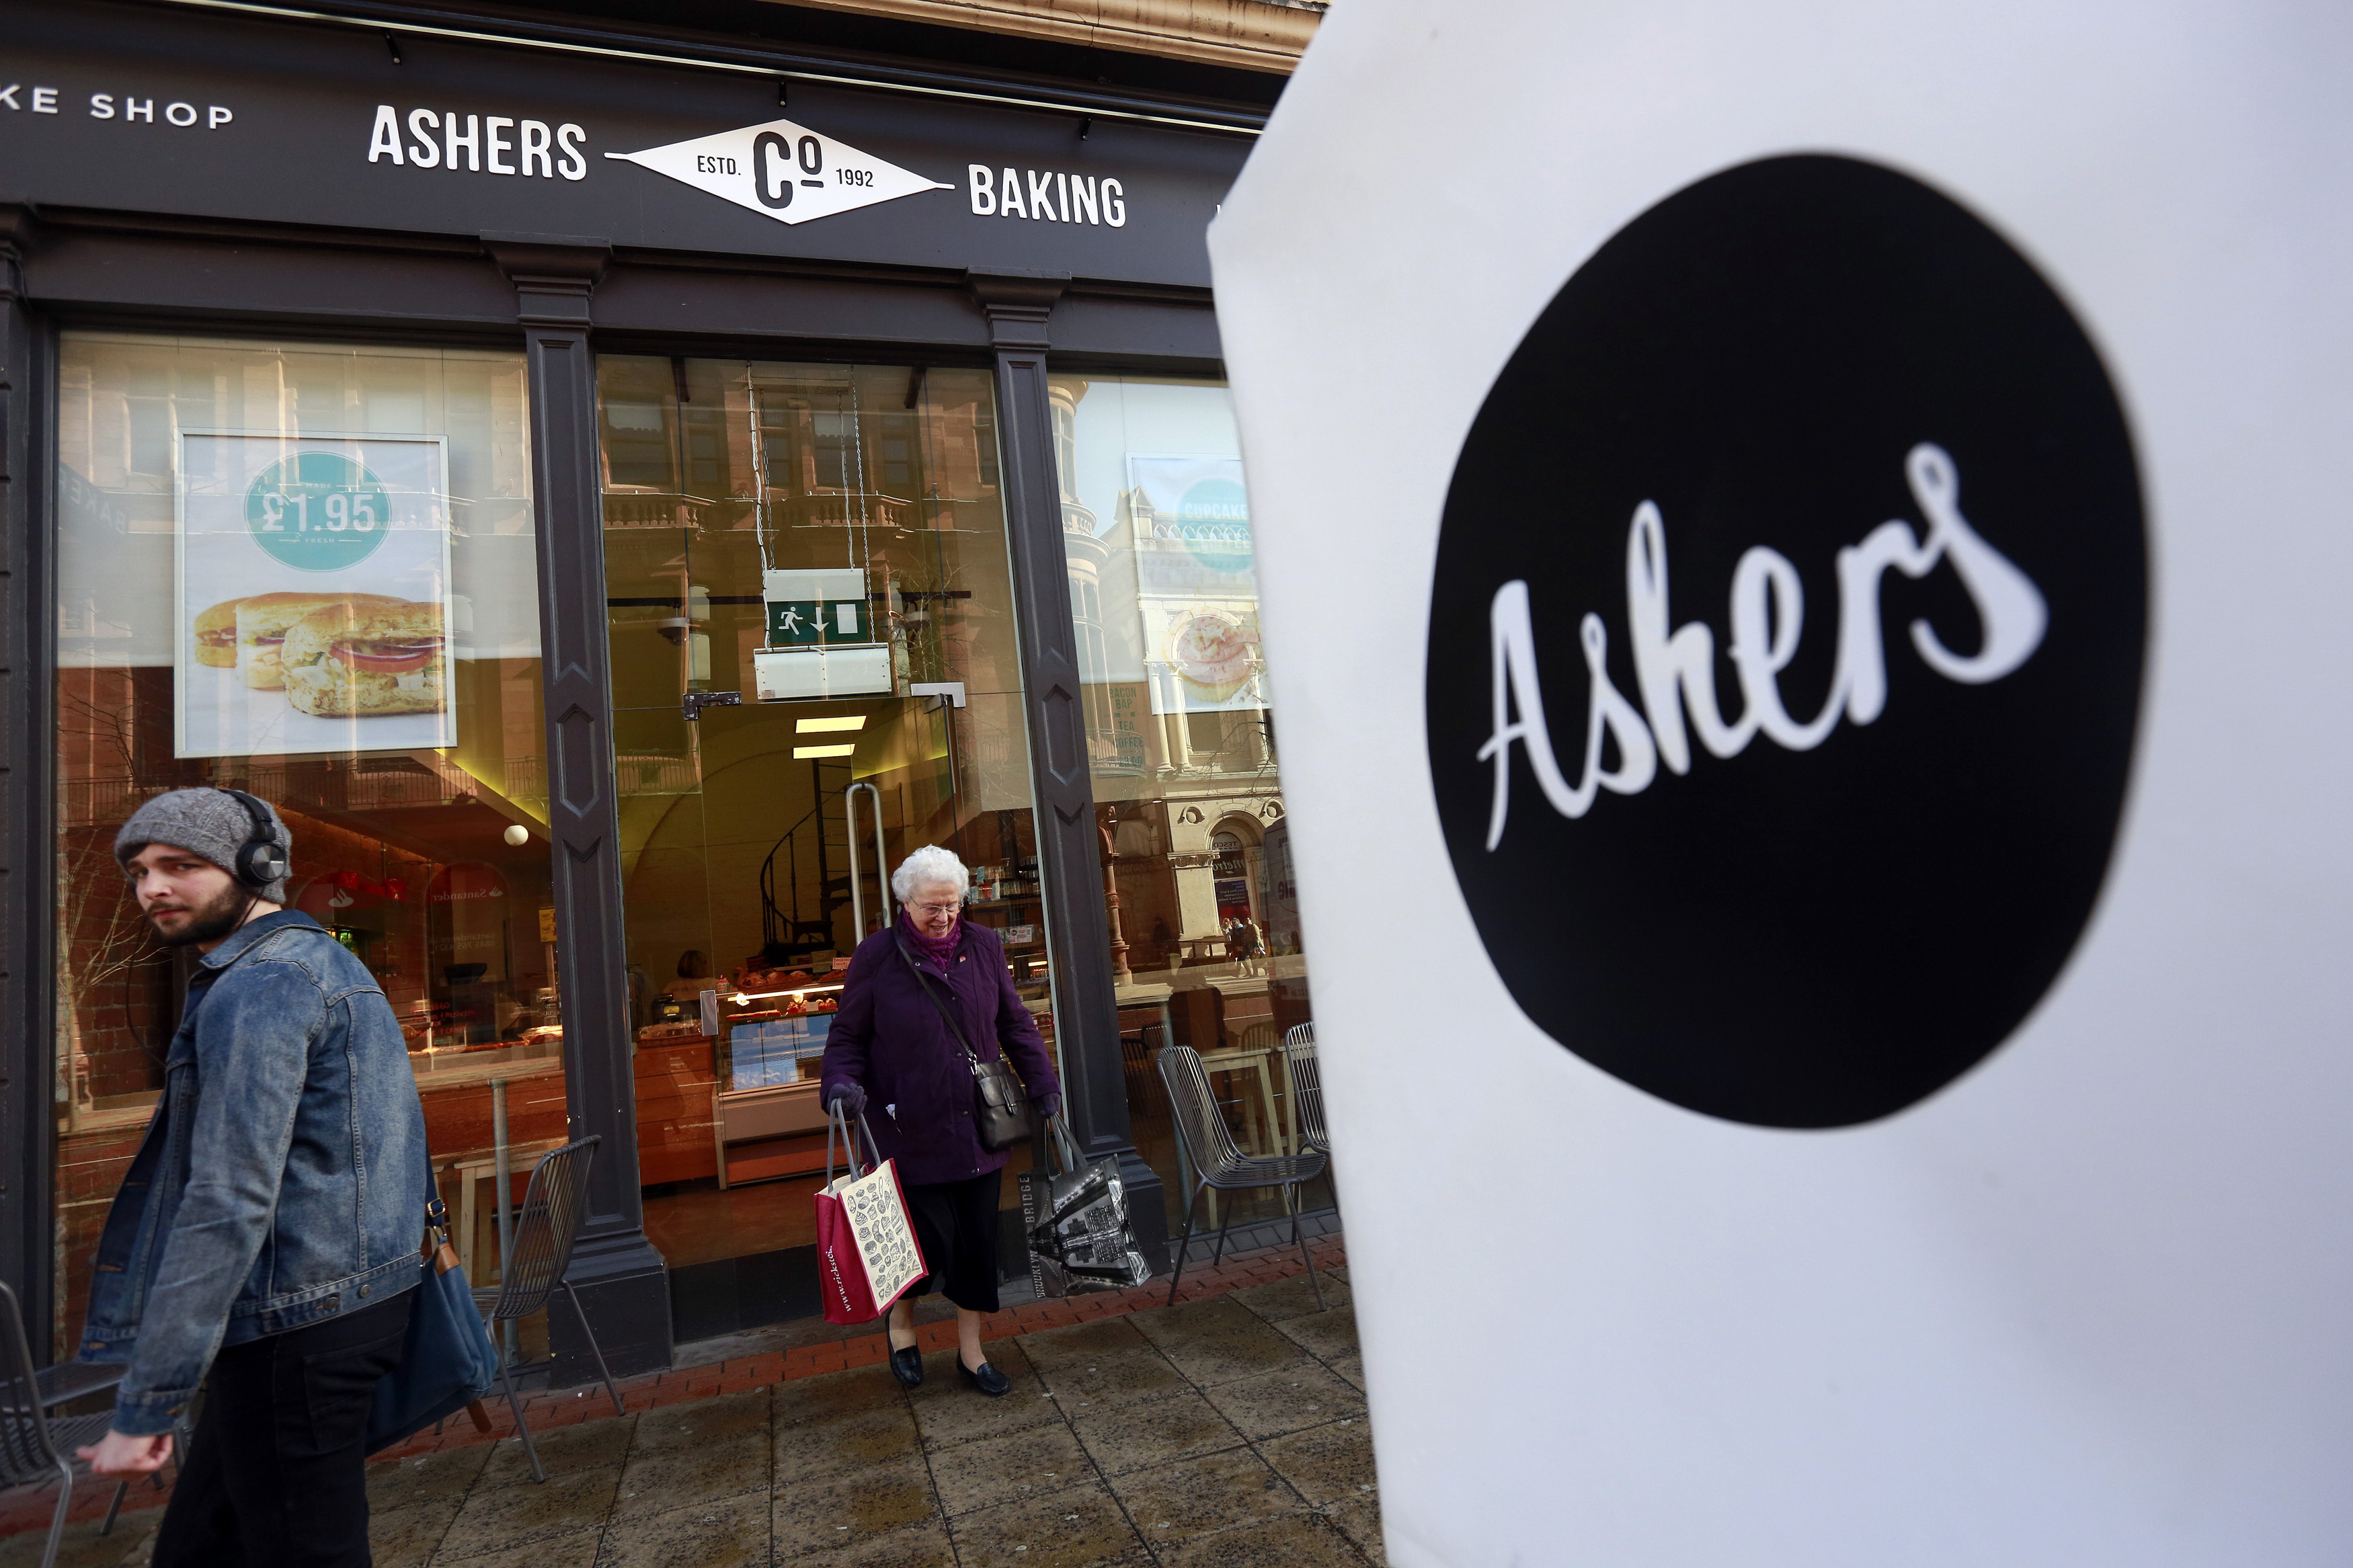 A woman leaves Ashers bakery in Belfast, Nothern Ireland, on March 26, 2015. Ashers will face a discrimination case from the Equality Commission after it refused to make a cake bearing a pro-gay marriage slogan.